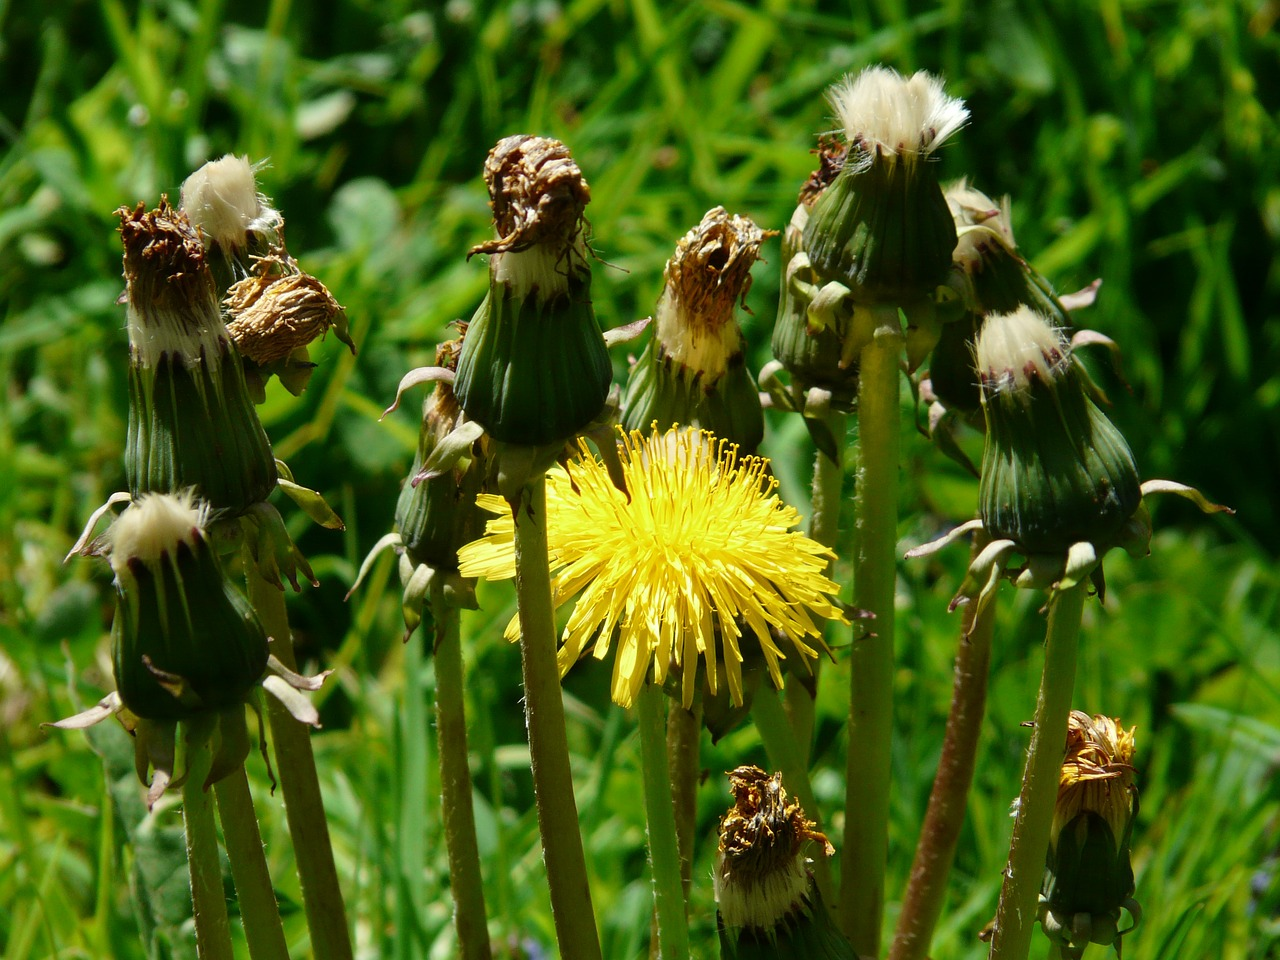 common dandelion pointed flower inflorescence free photo